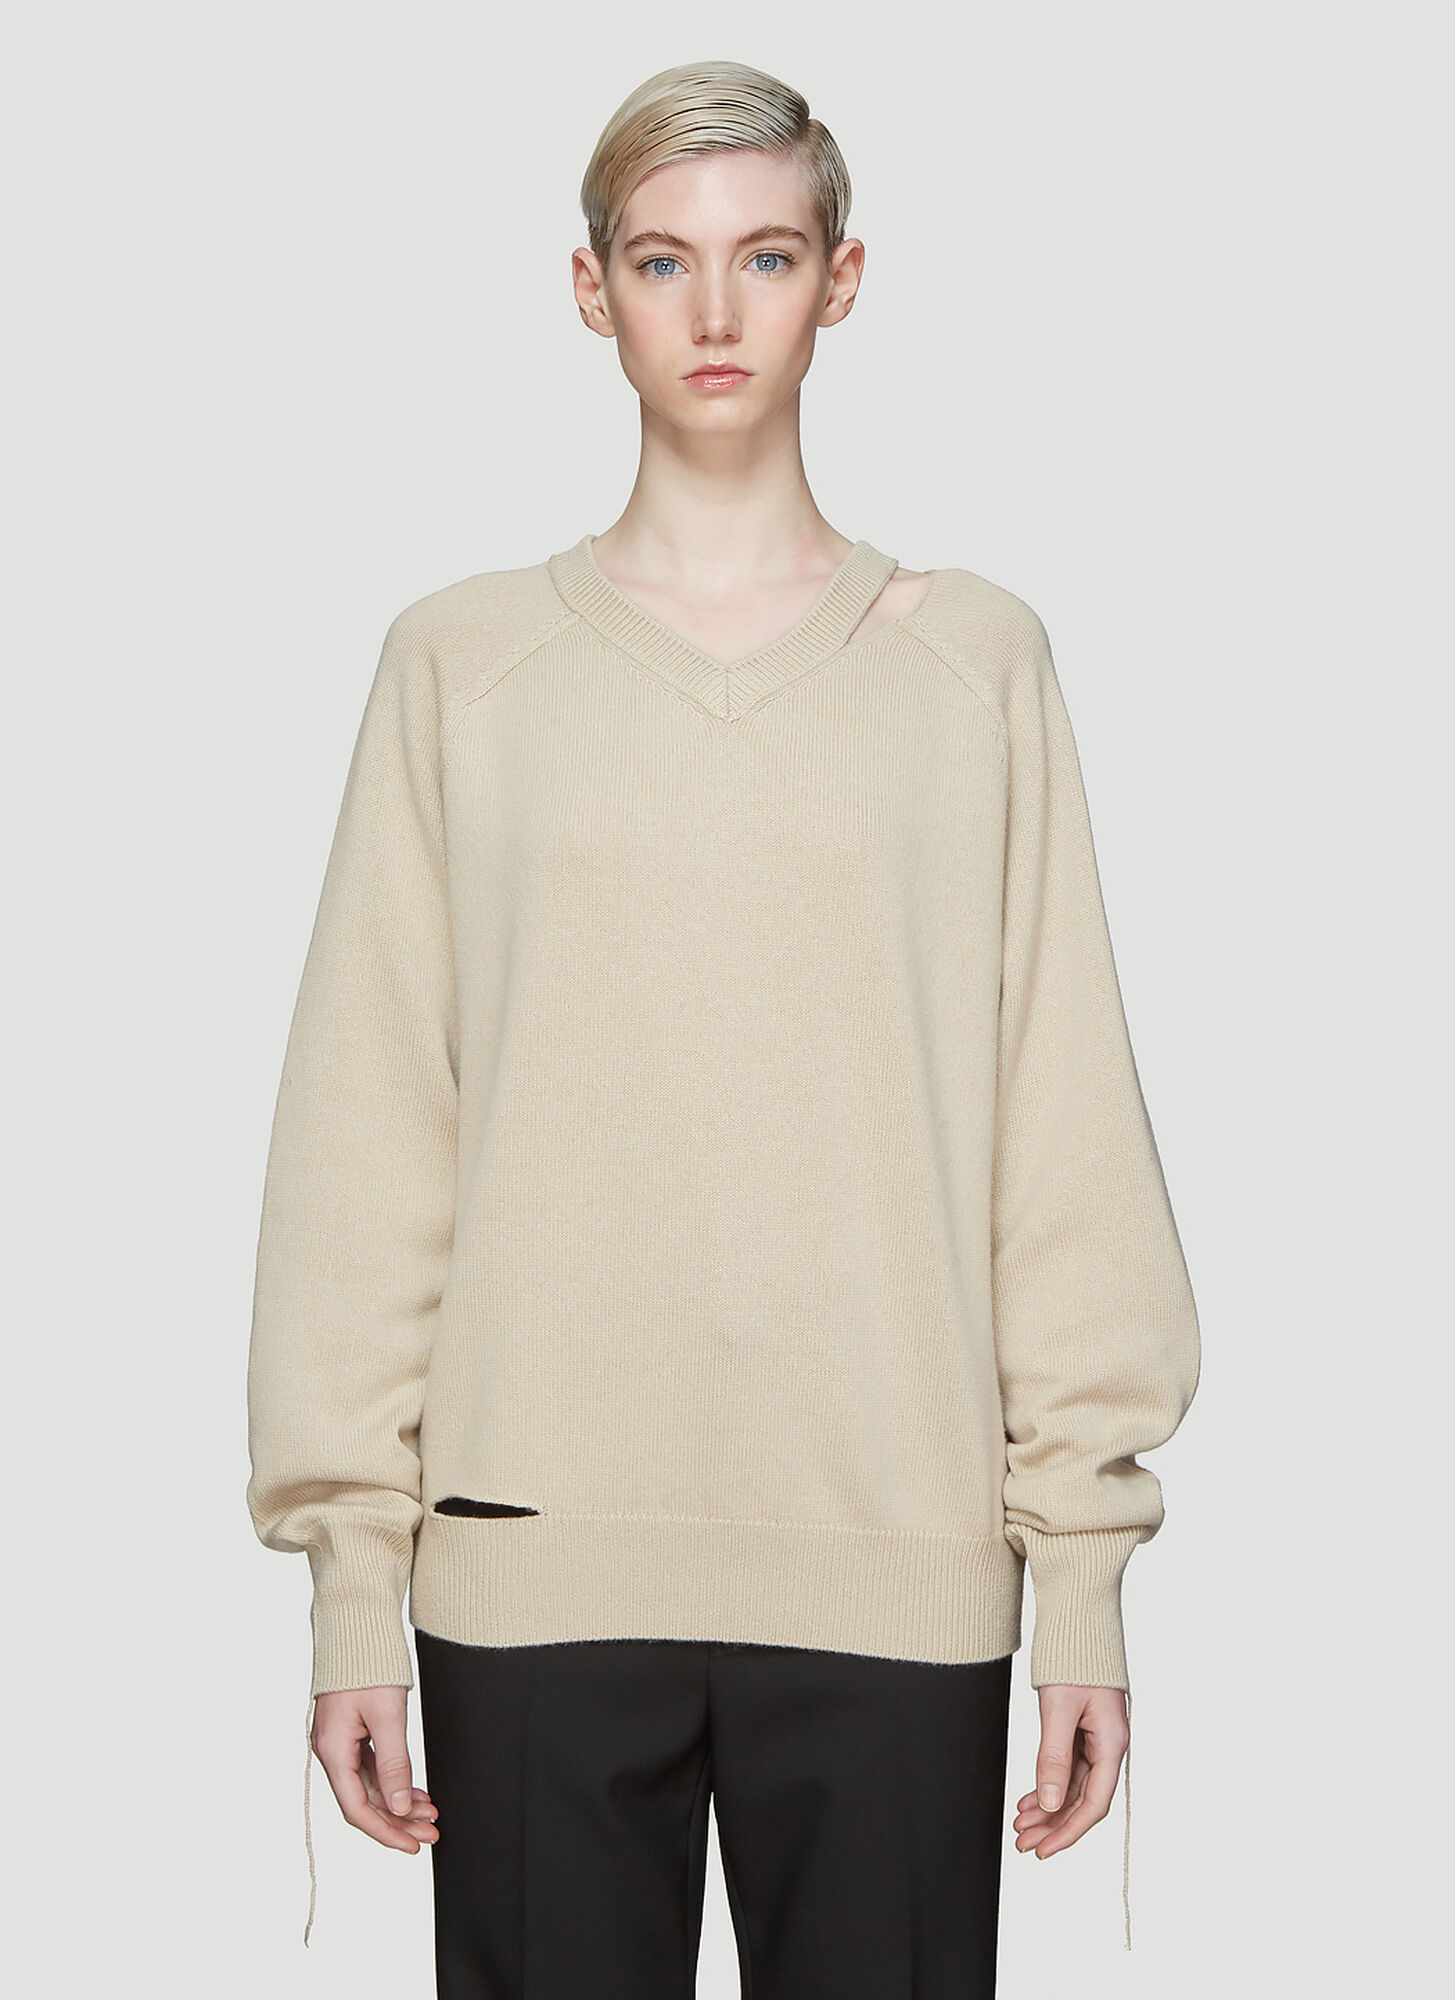 Helmut Lang Slash Neck Knit Sweater in Beige